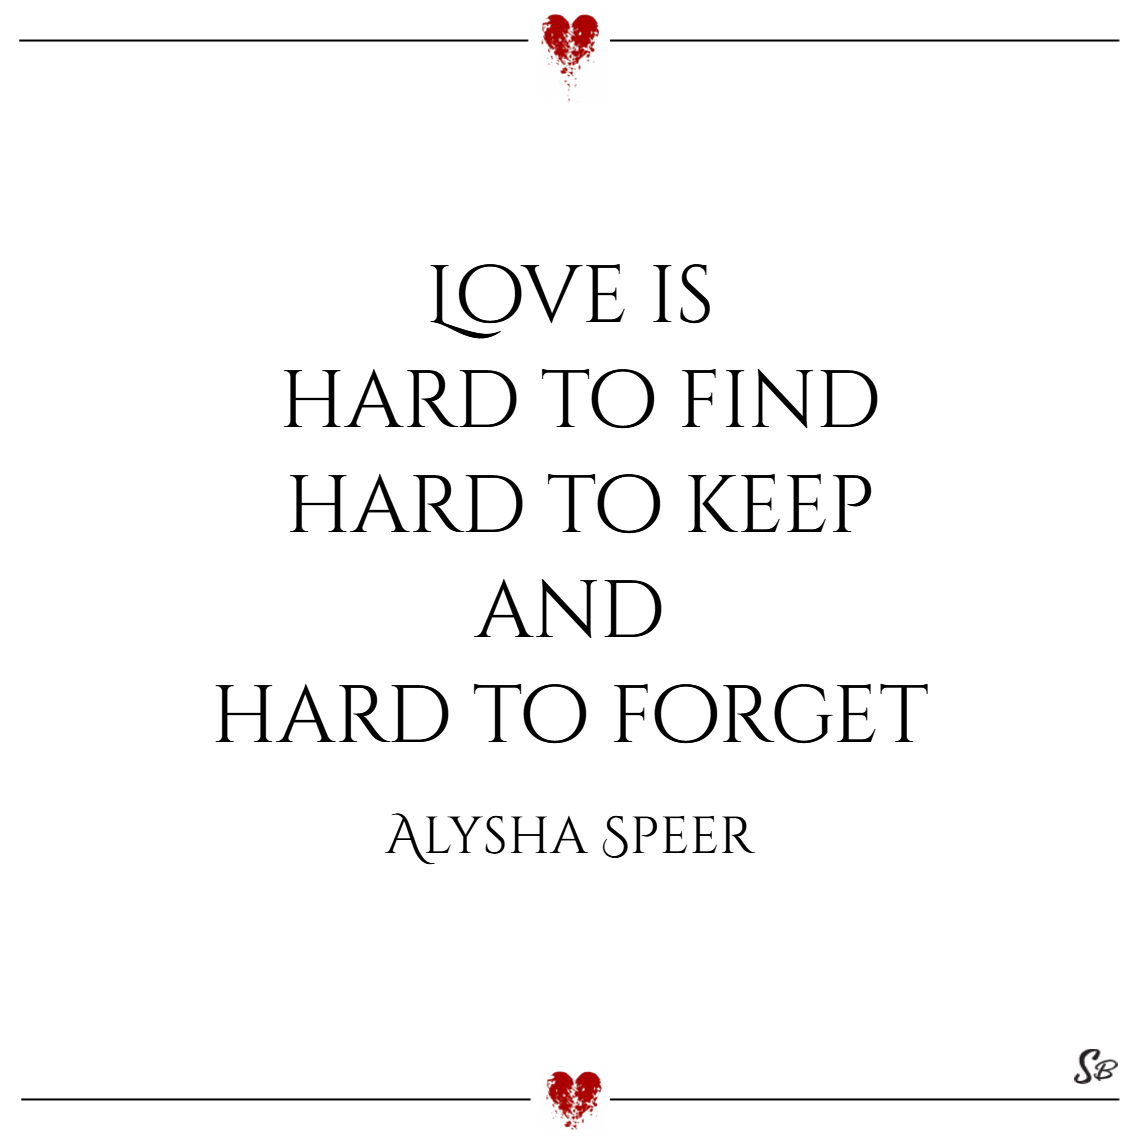 Love is hard to find, hard to keep, and hard to forget. – alysha speer